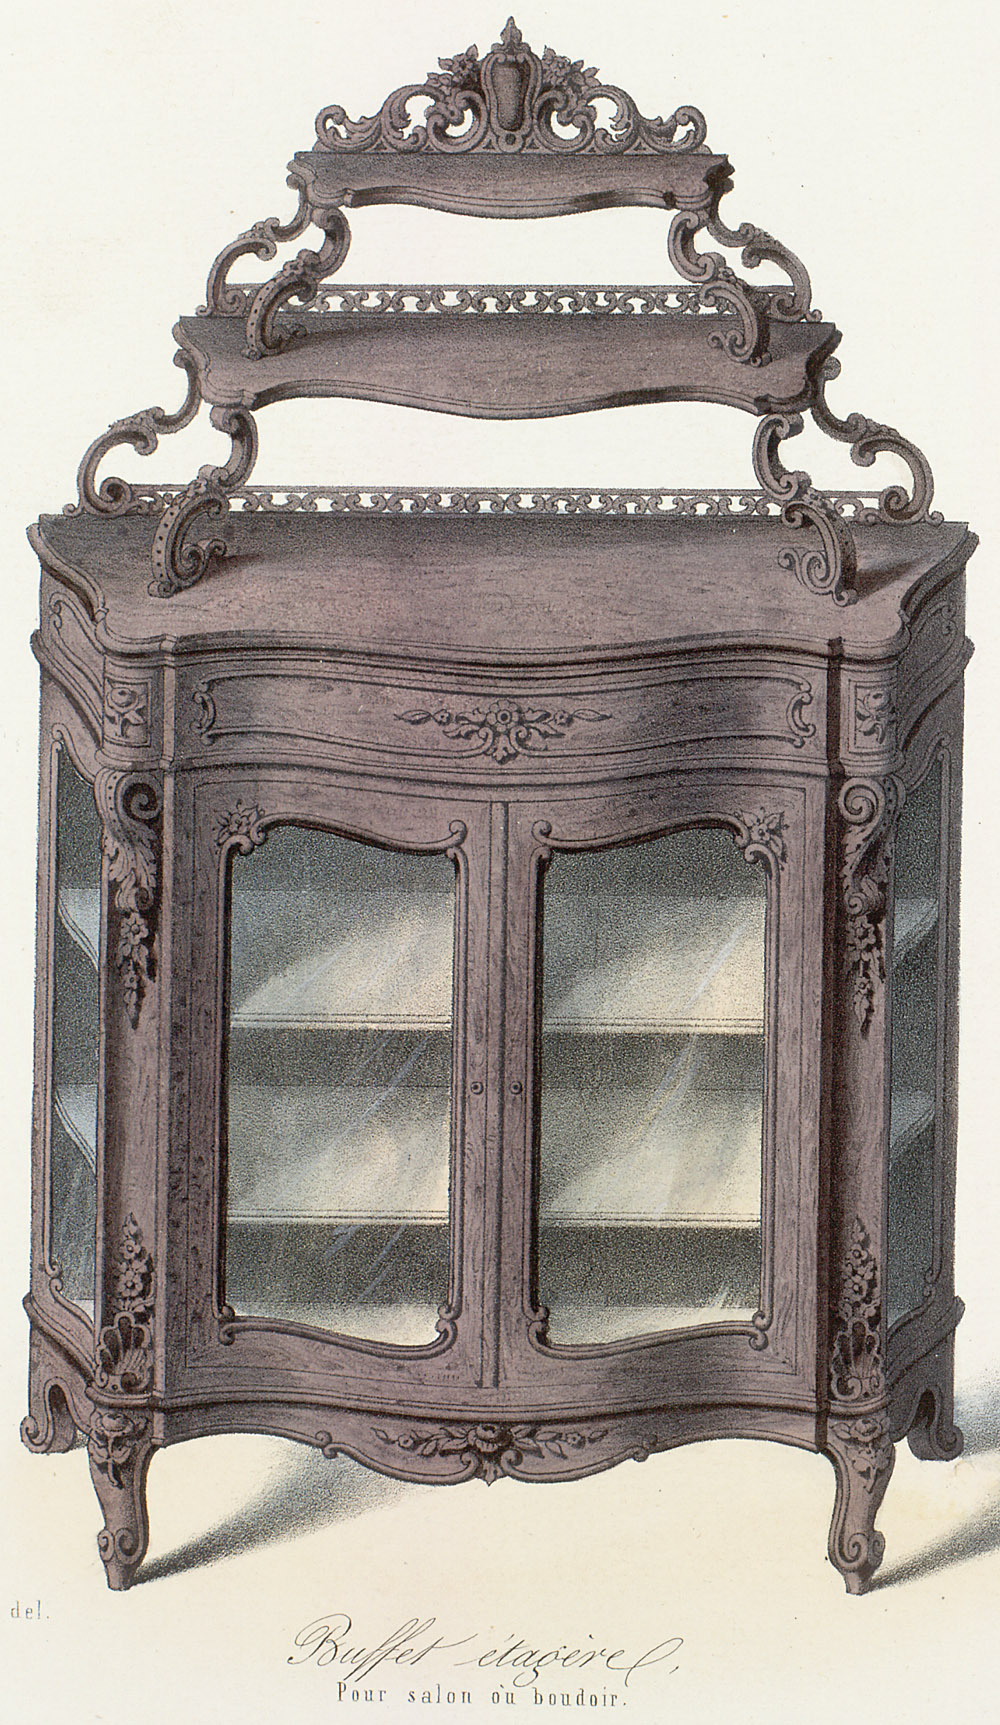 Cabinets (case furniture),  Image number:SIL12-2-139b